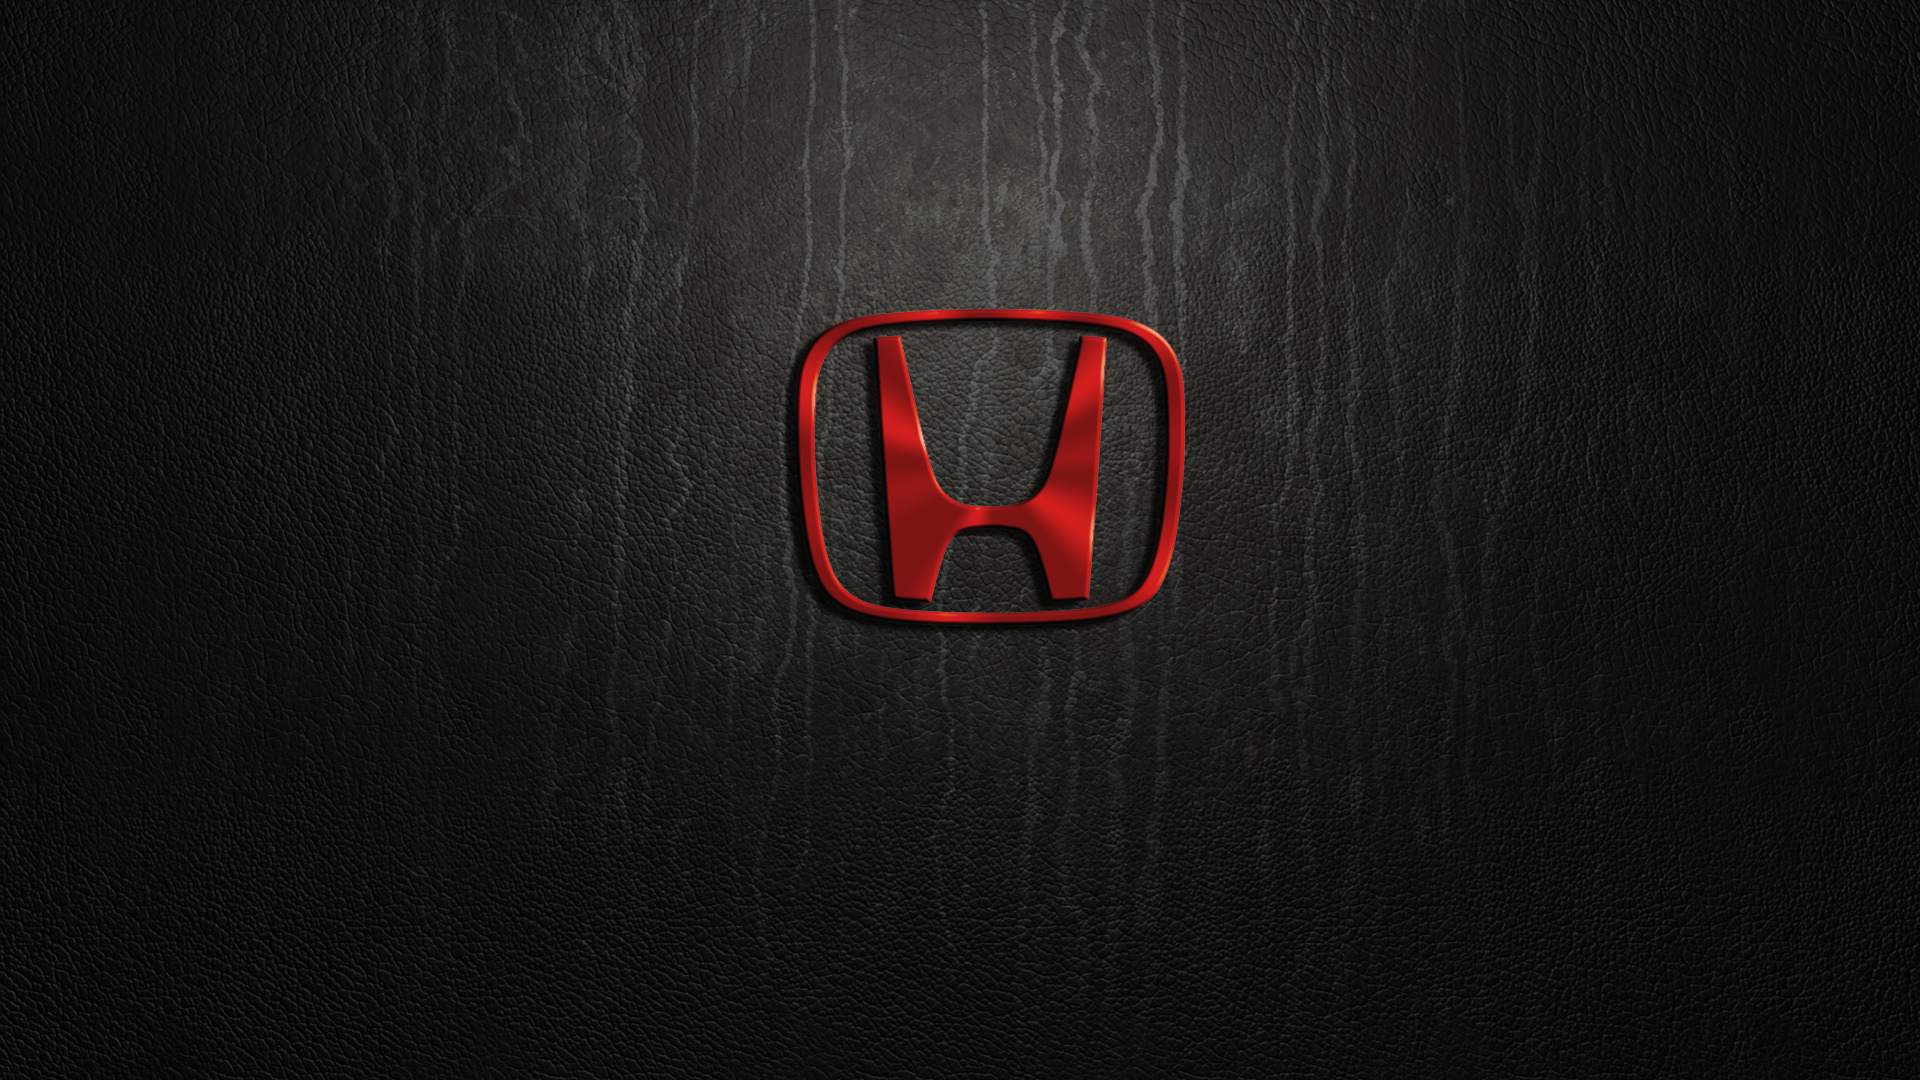 Honda Wallpaper